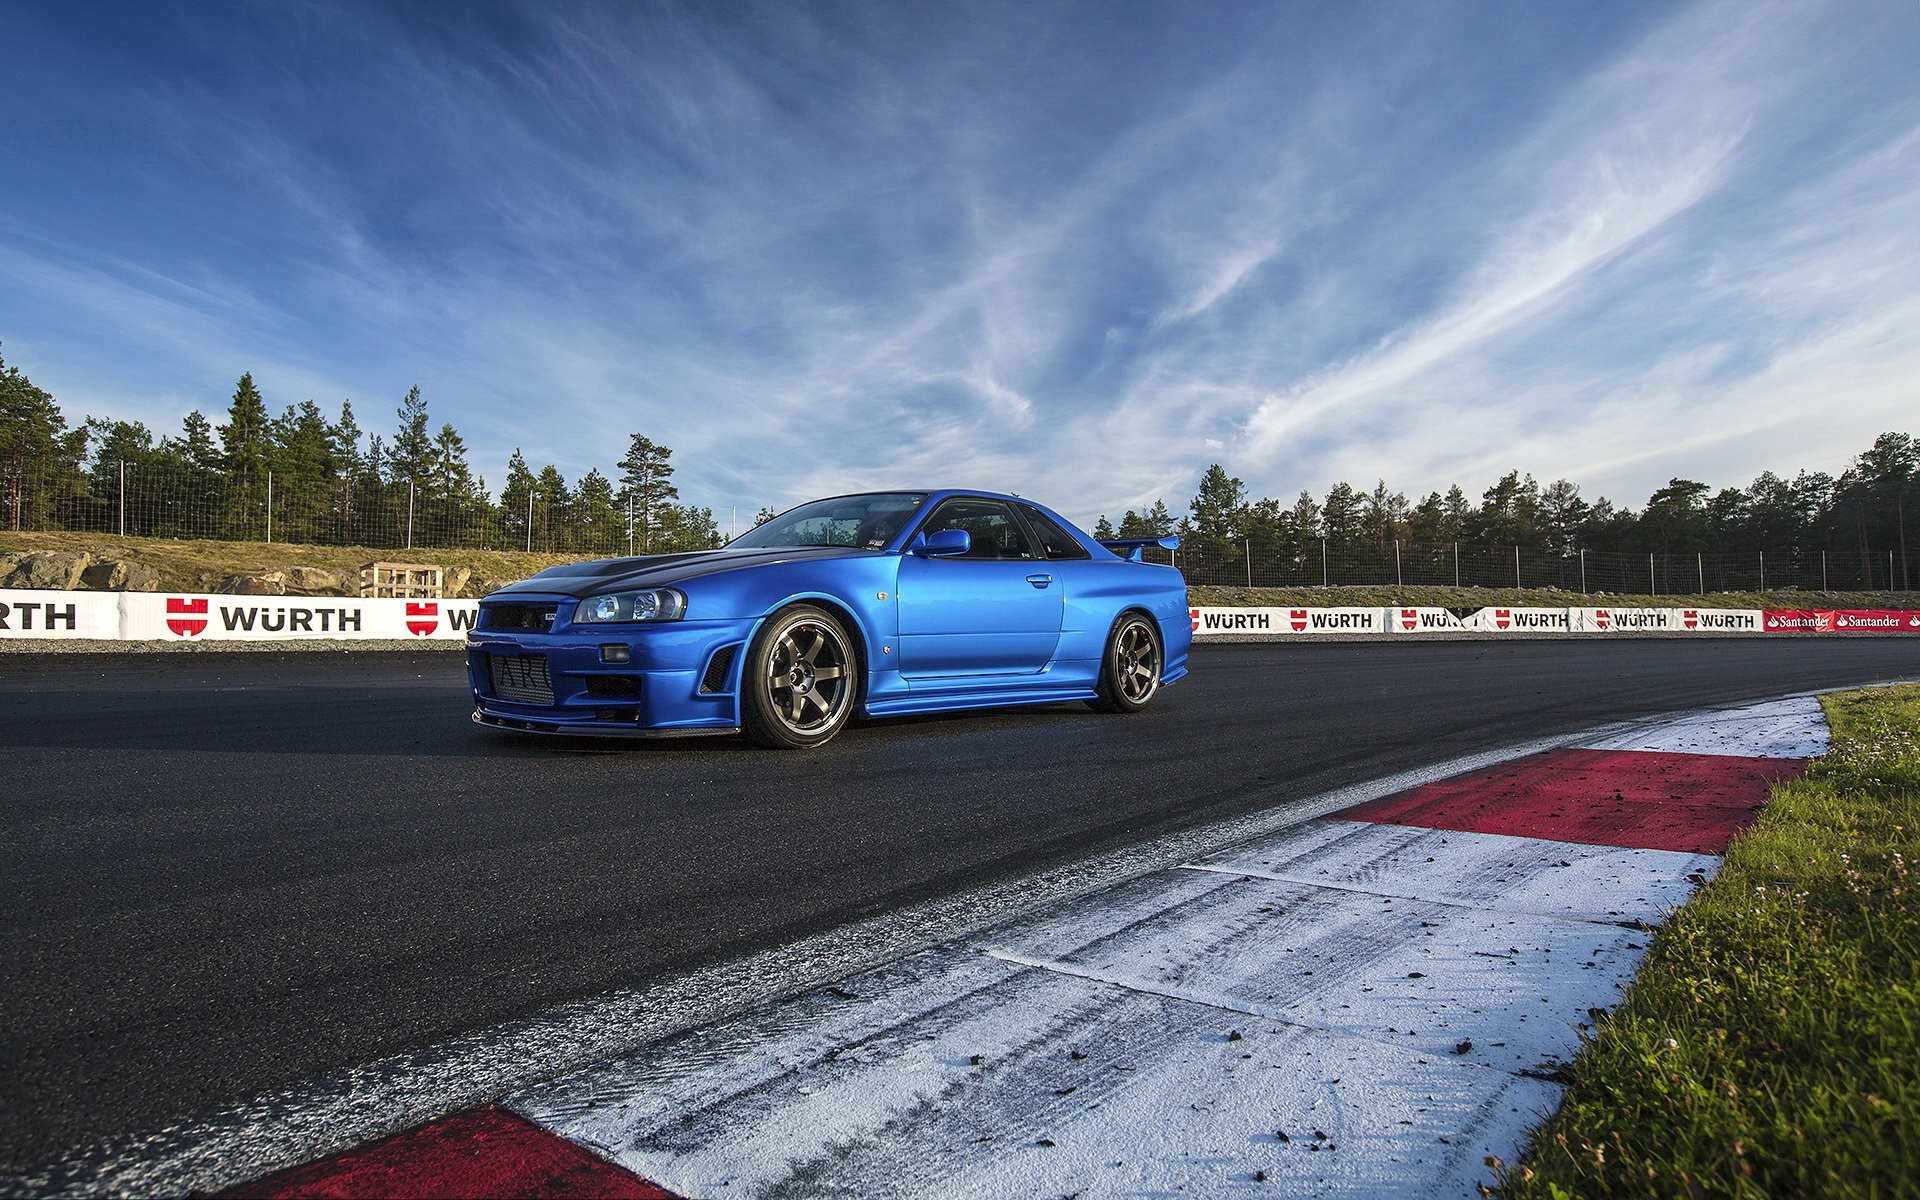 Wallpaper Nissan R34 Blue Car Side View 1920x1200 Hd Picture Image